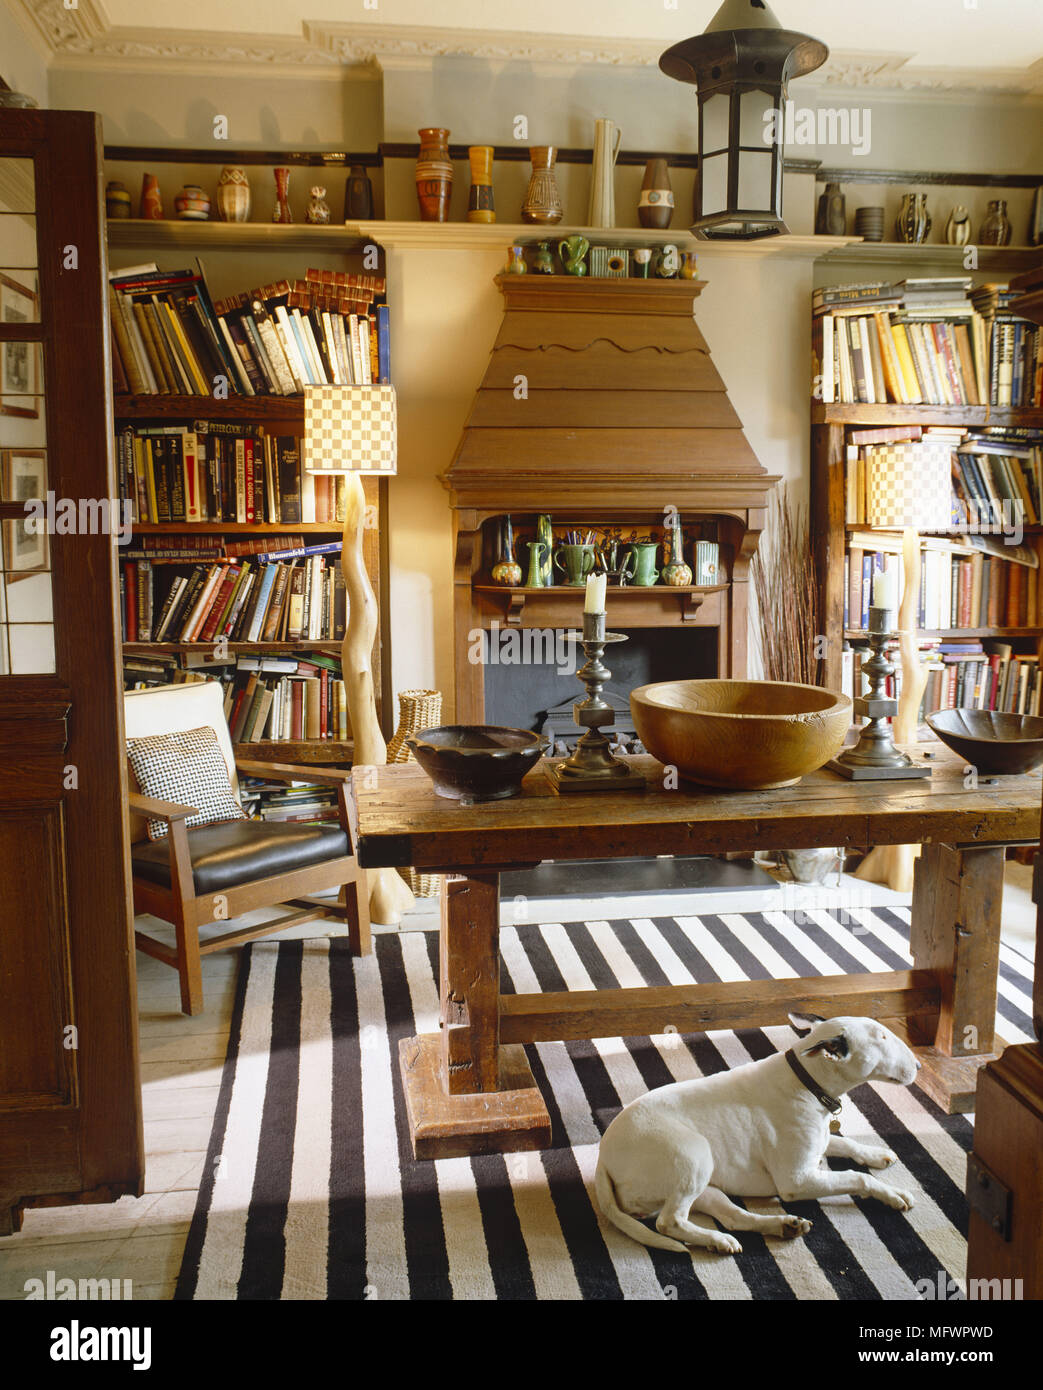 Dog Lying On Striped Rug Next To Rustic Wooden Dining Table And Fireplace In Between Two Bookshelf Units